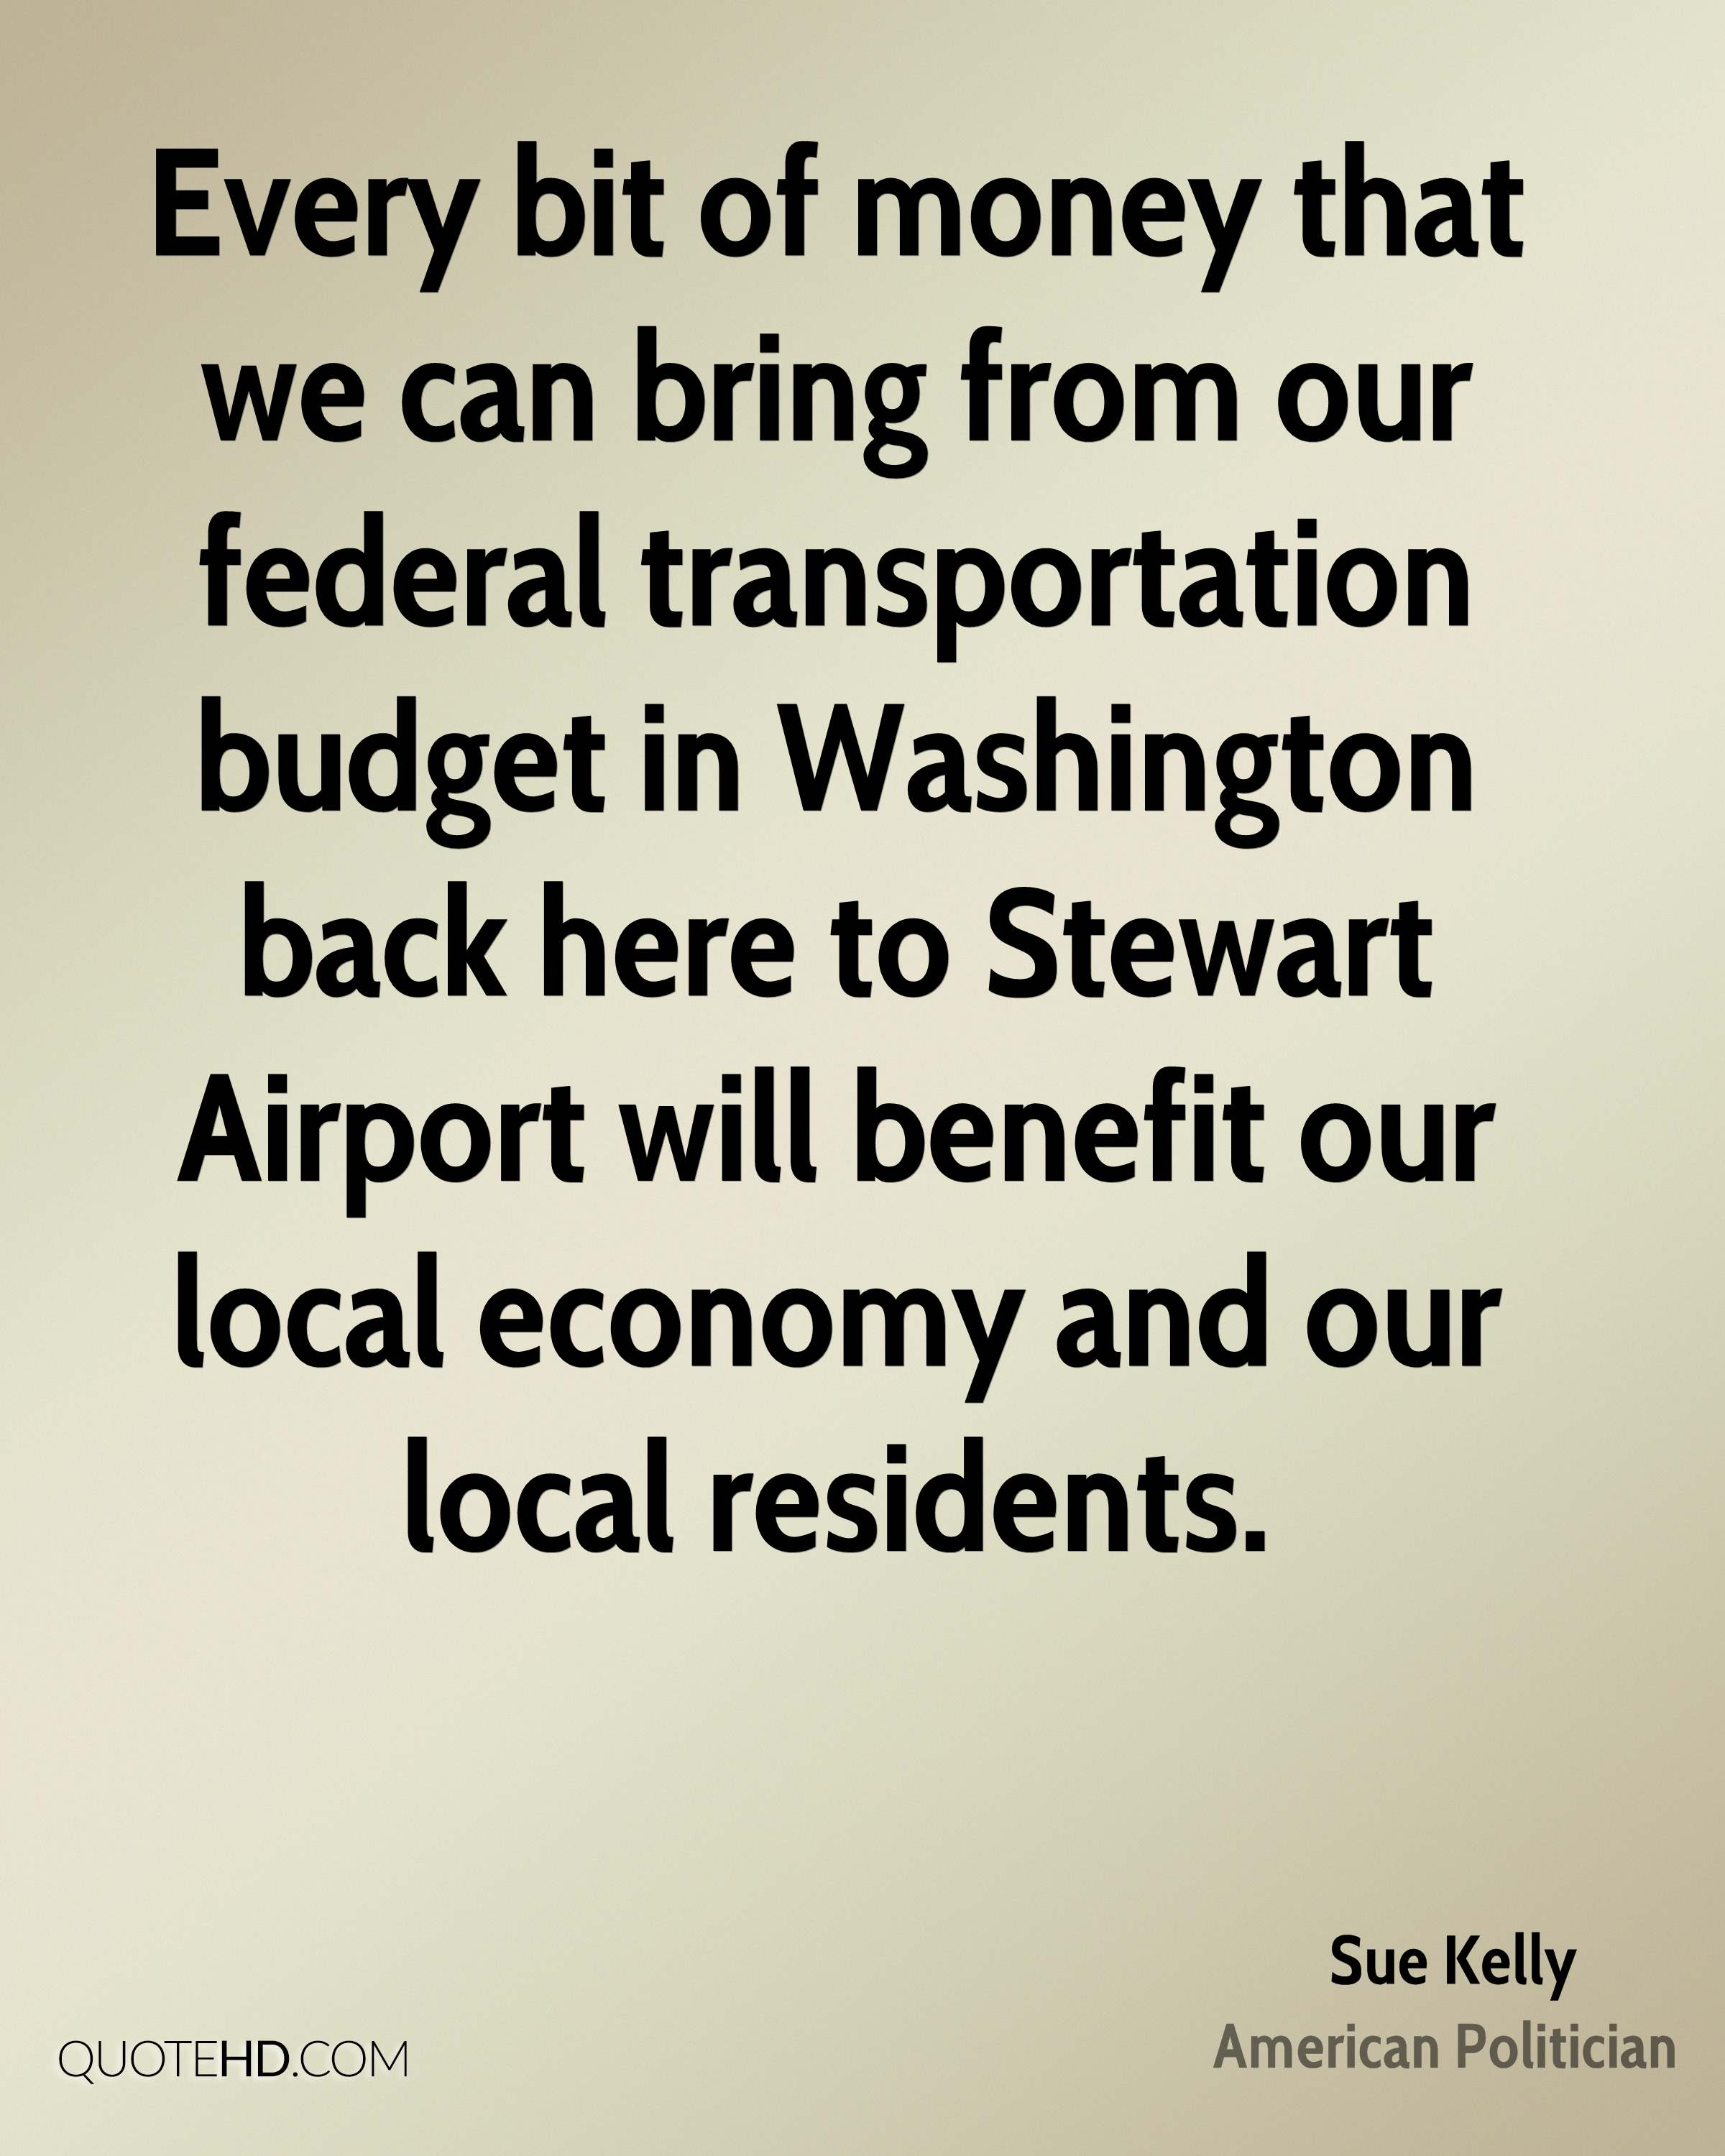 Every bit of money that we can bring from our federal transportation budget in Washington back here to Stewart Airport will benefit our local economy and our local residents.